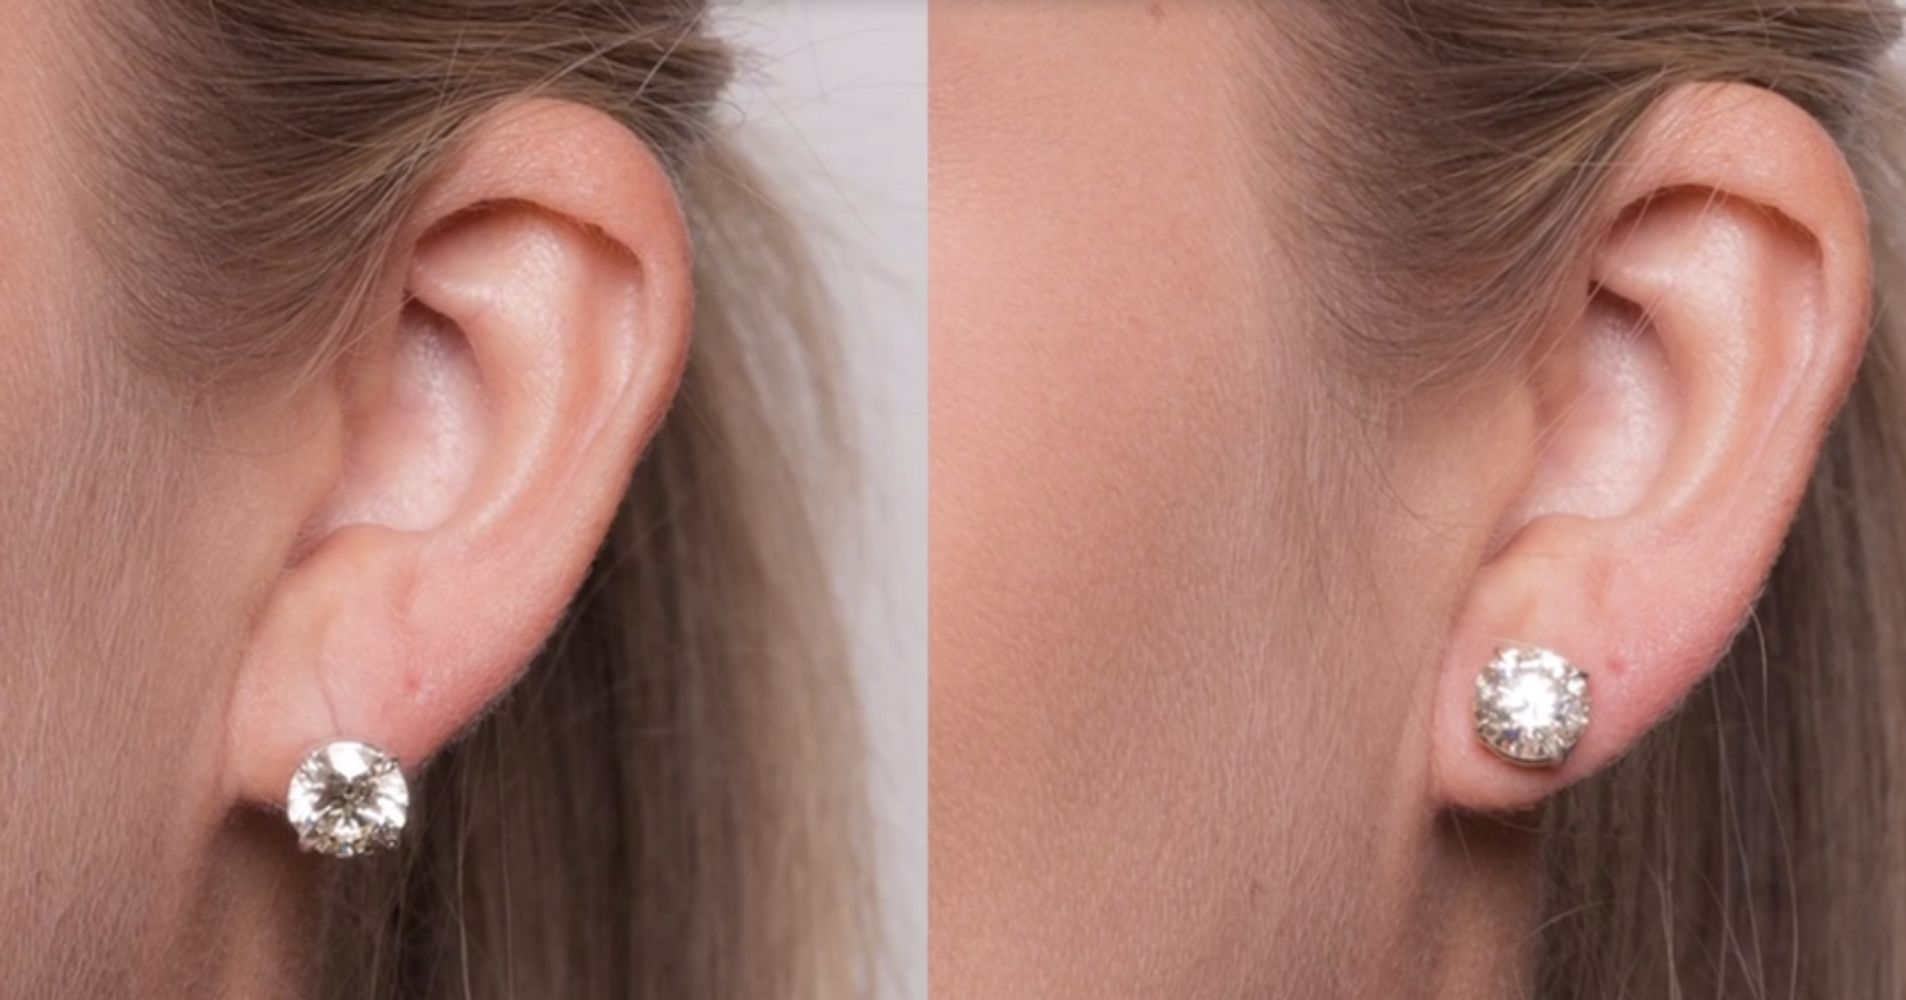 This Simple Device Solves A Major Problem For Pierced Ears